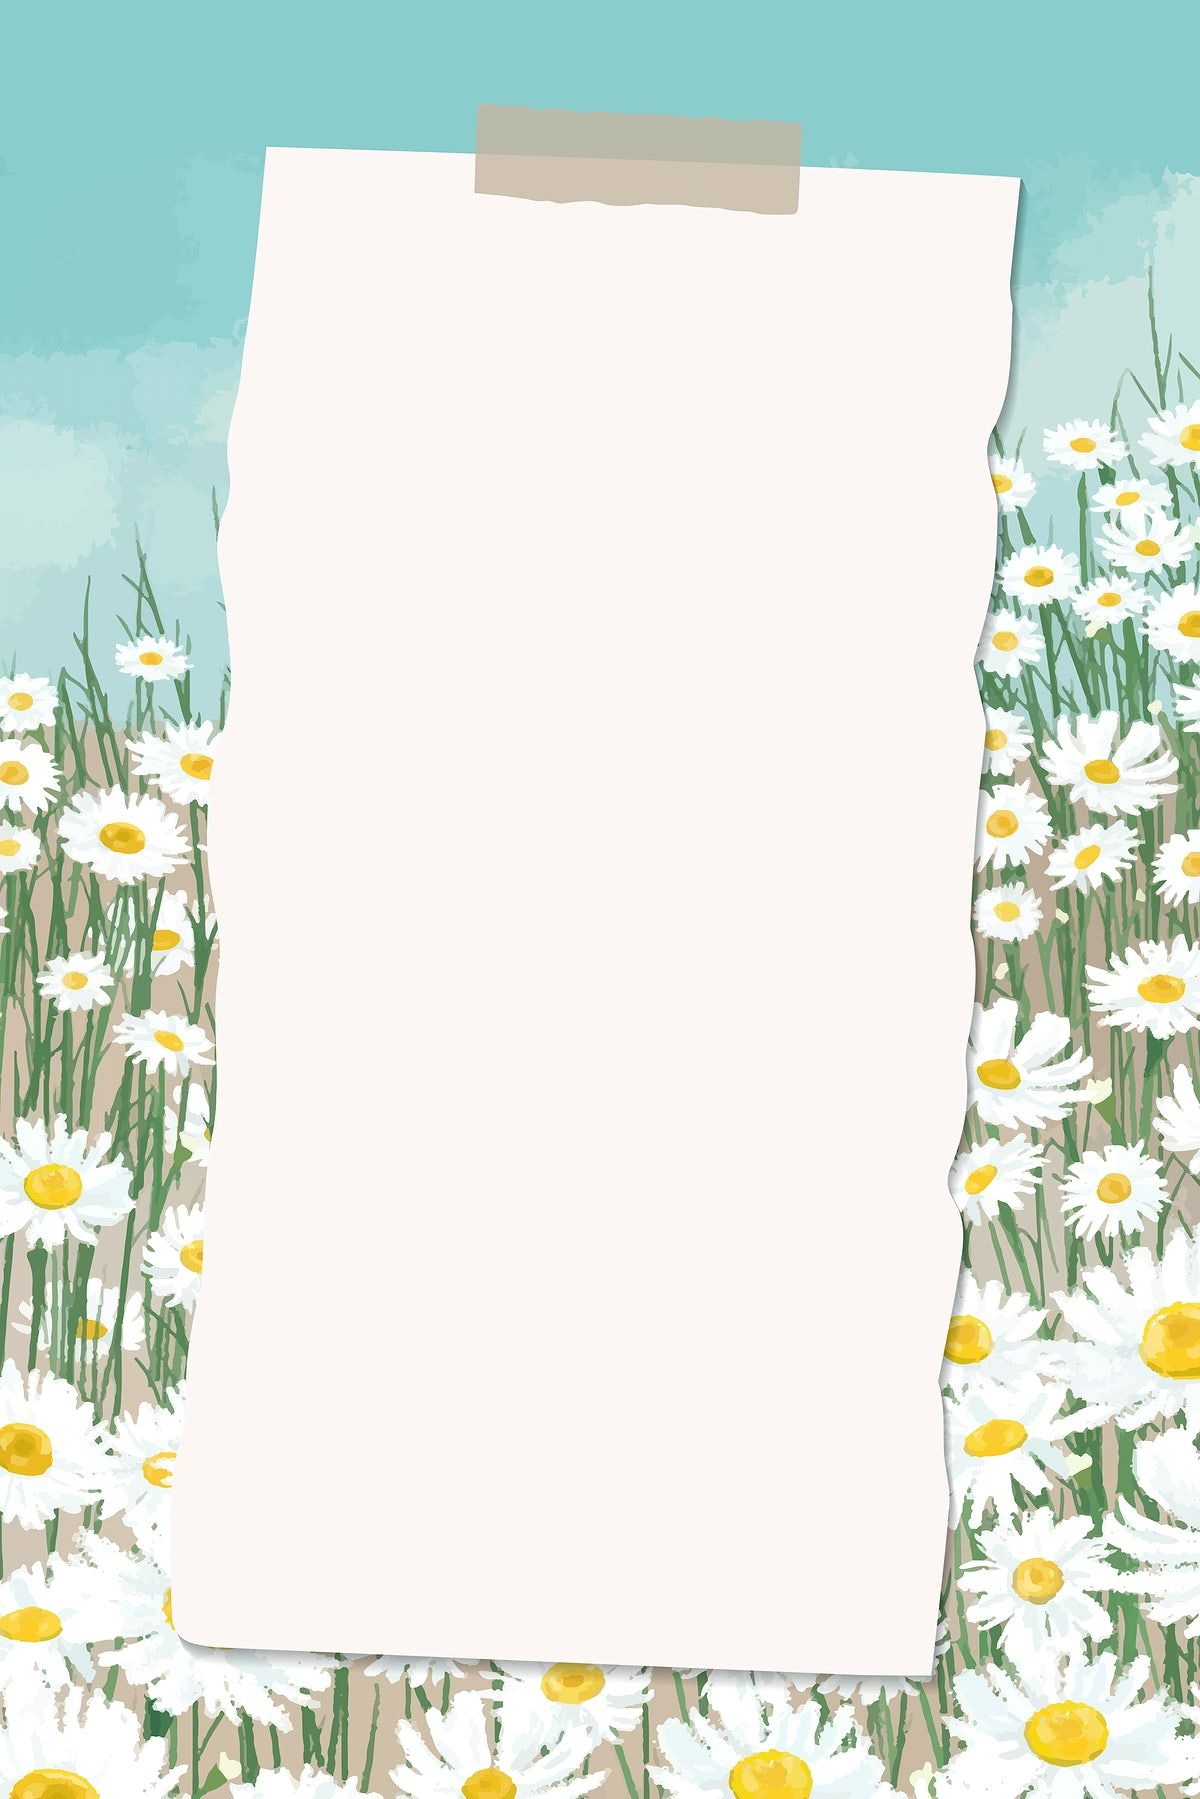 Download premium vector of Empty paper on daisy field patterned background vector by marinemynt about daisy, spring poster, Daisy illustration, page, and frame paper 2043947